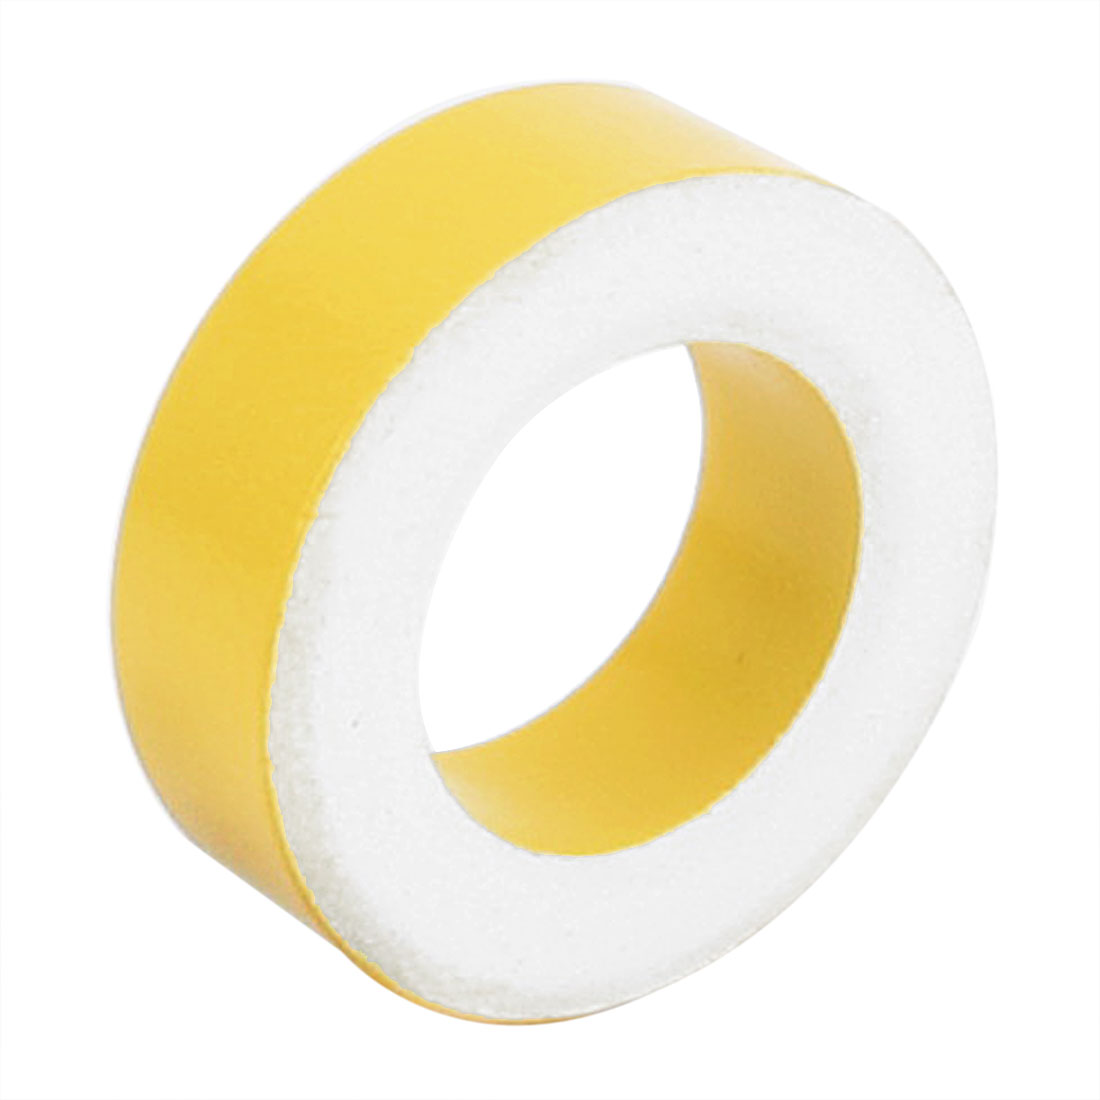 33mmx19mmx11mm Yellow White Ring Power Ferrite Toroid Core AT131-26